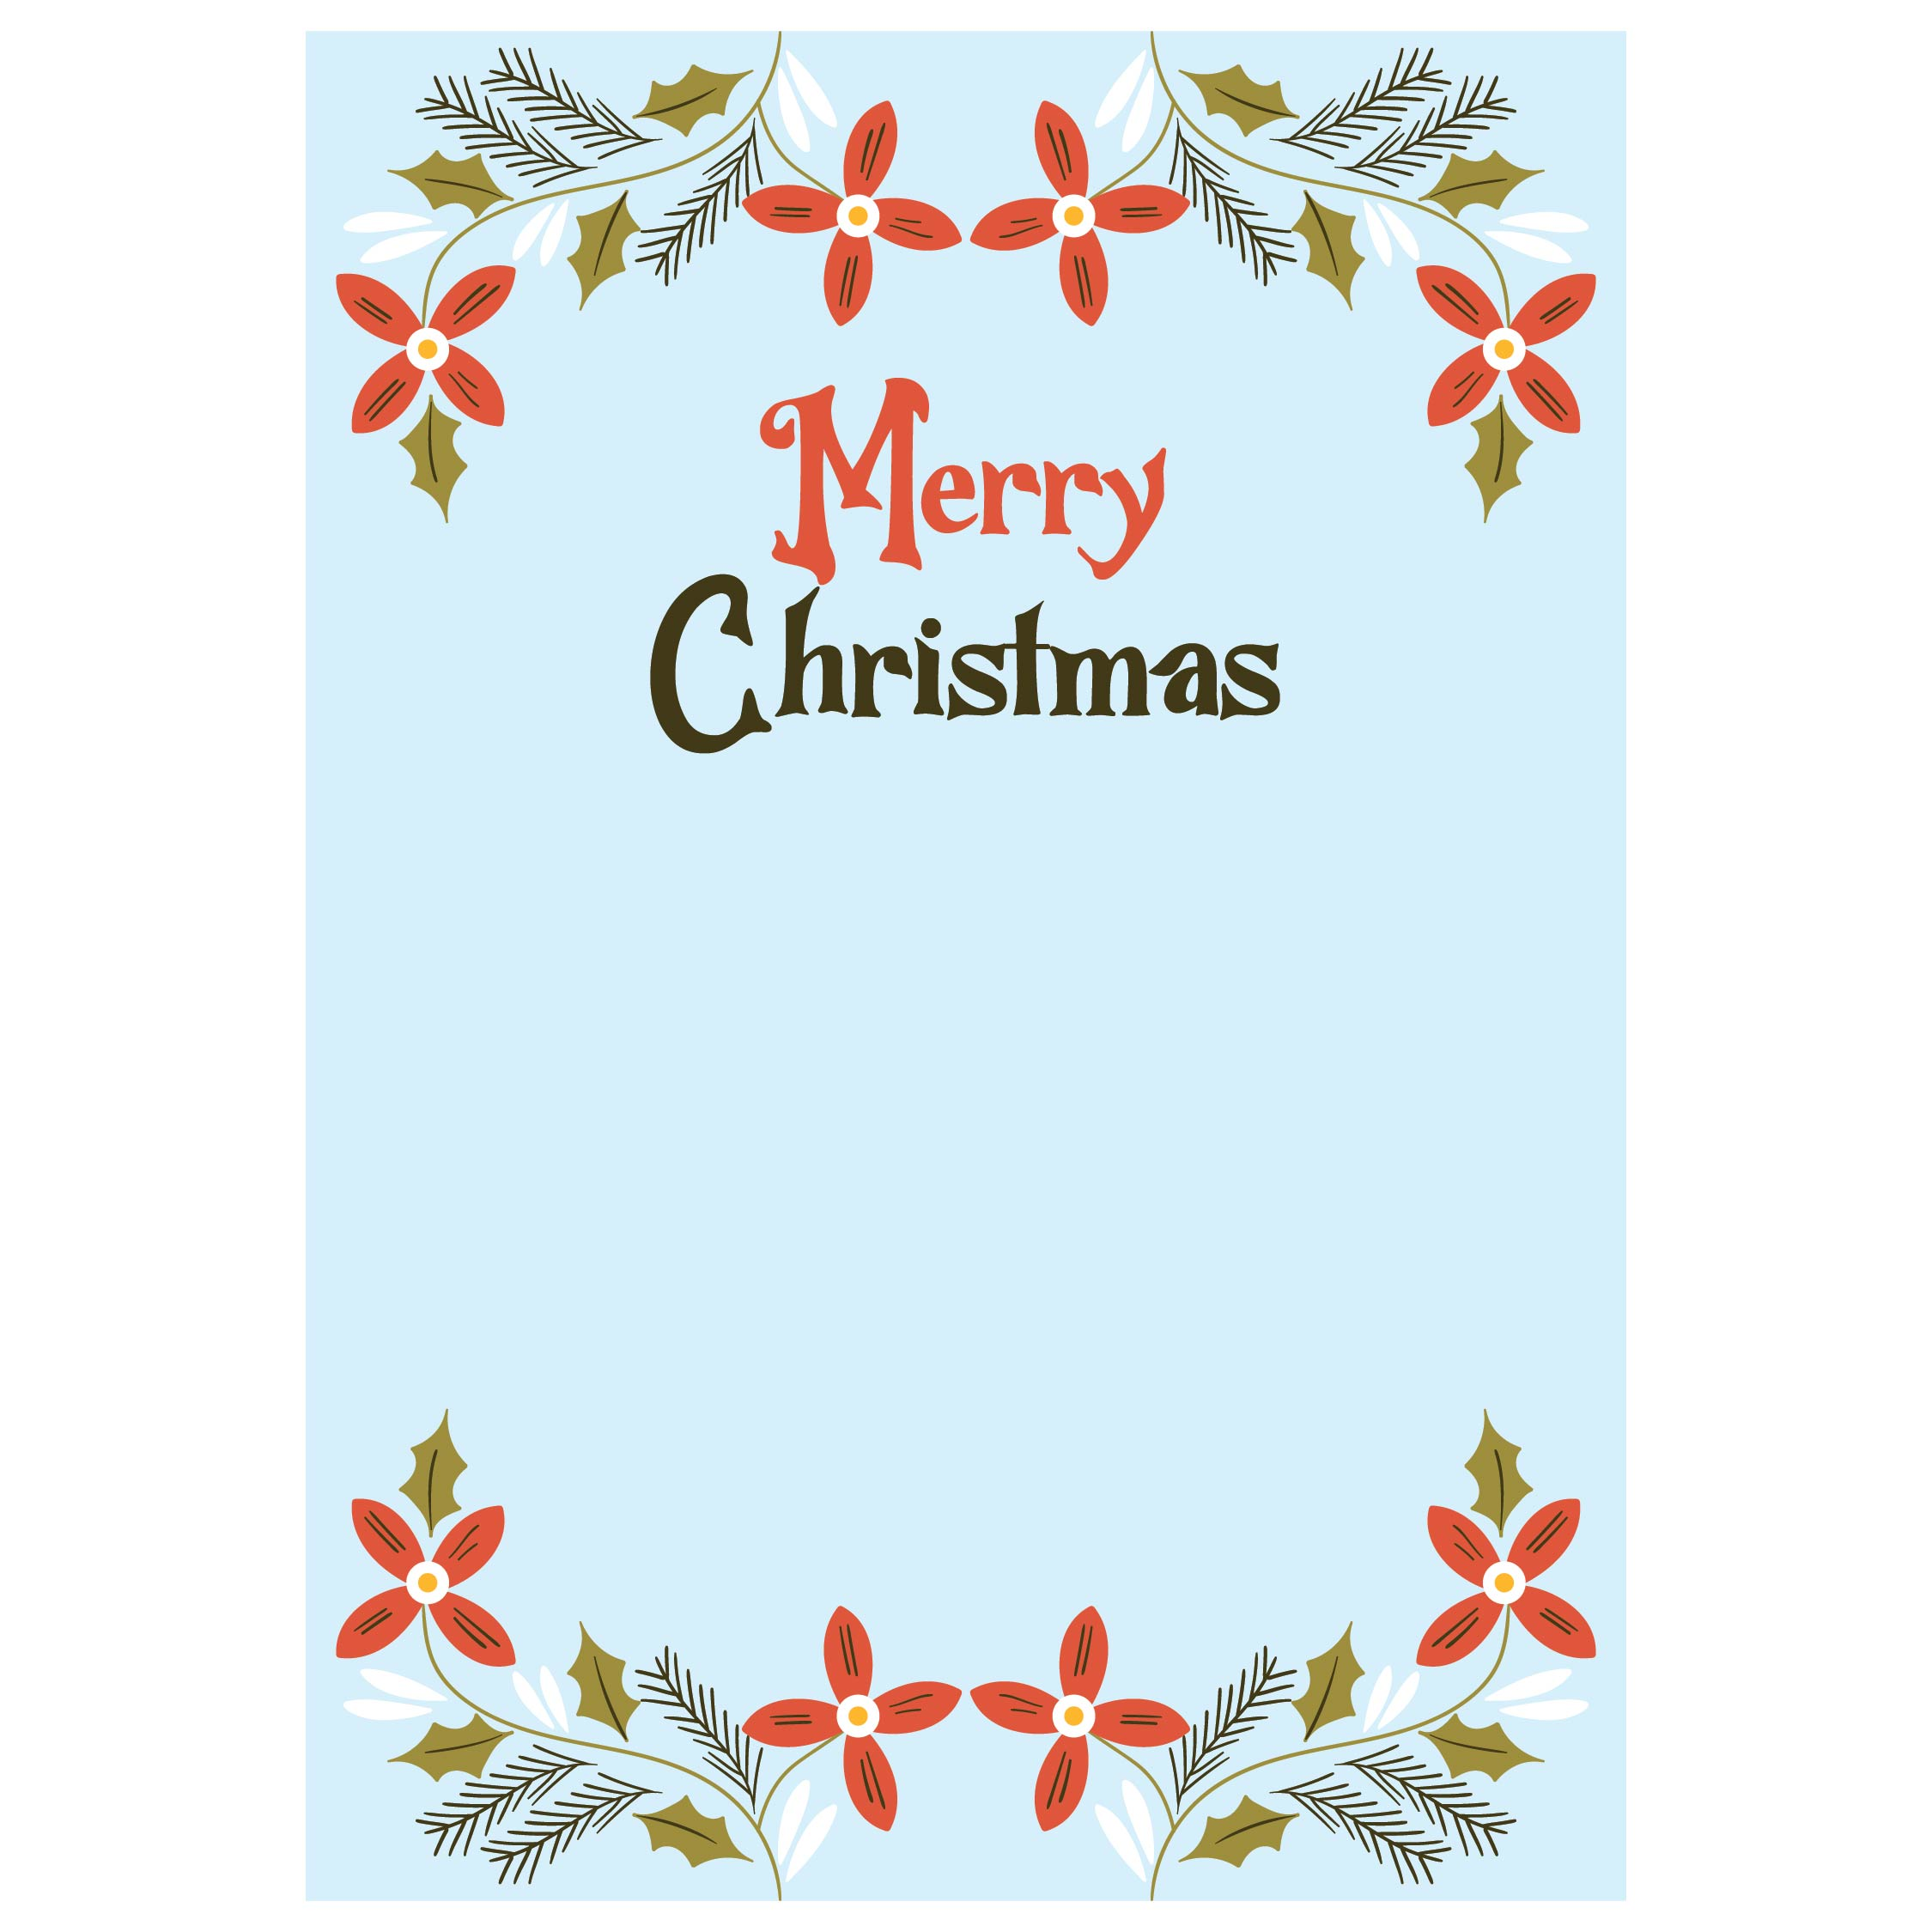 Christmas Cards Front And Back Printable For Teachers